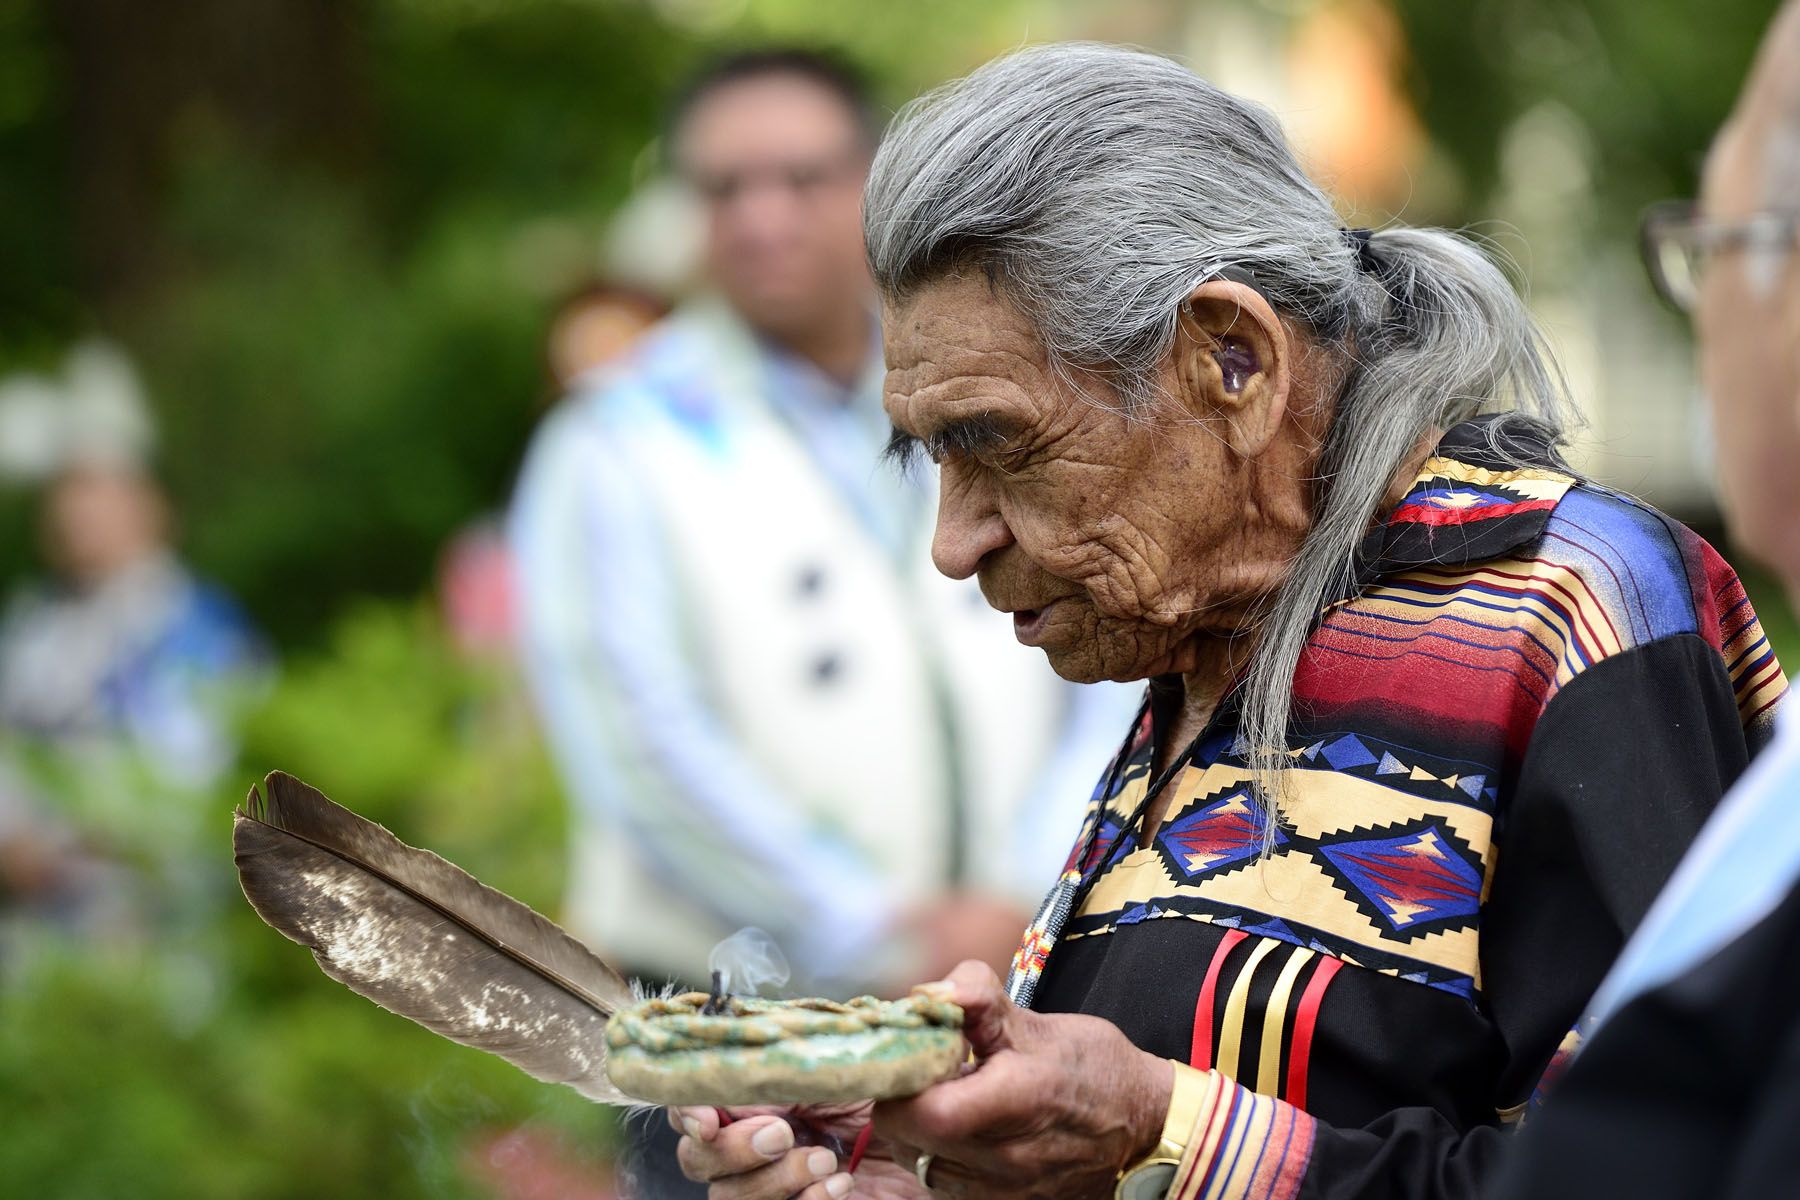 Everyone took part in a Mi'kmaq smudging ceremony in the back garden of Government House.